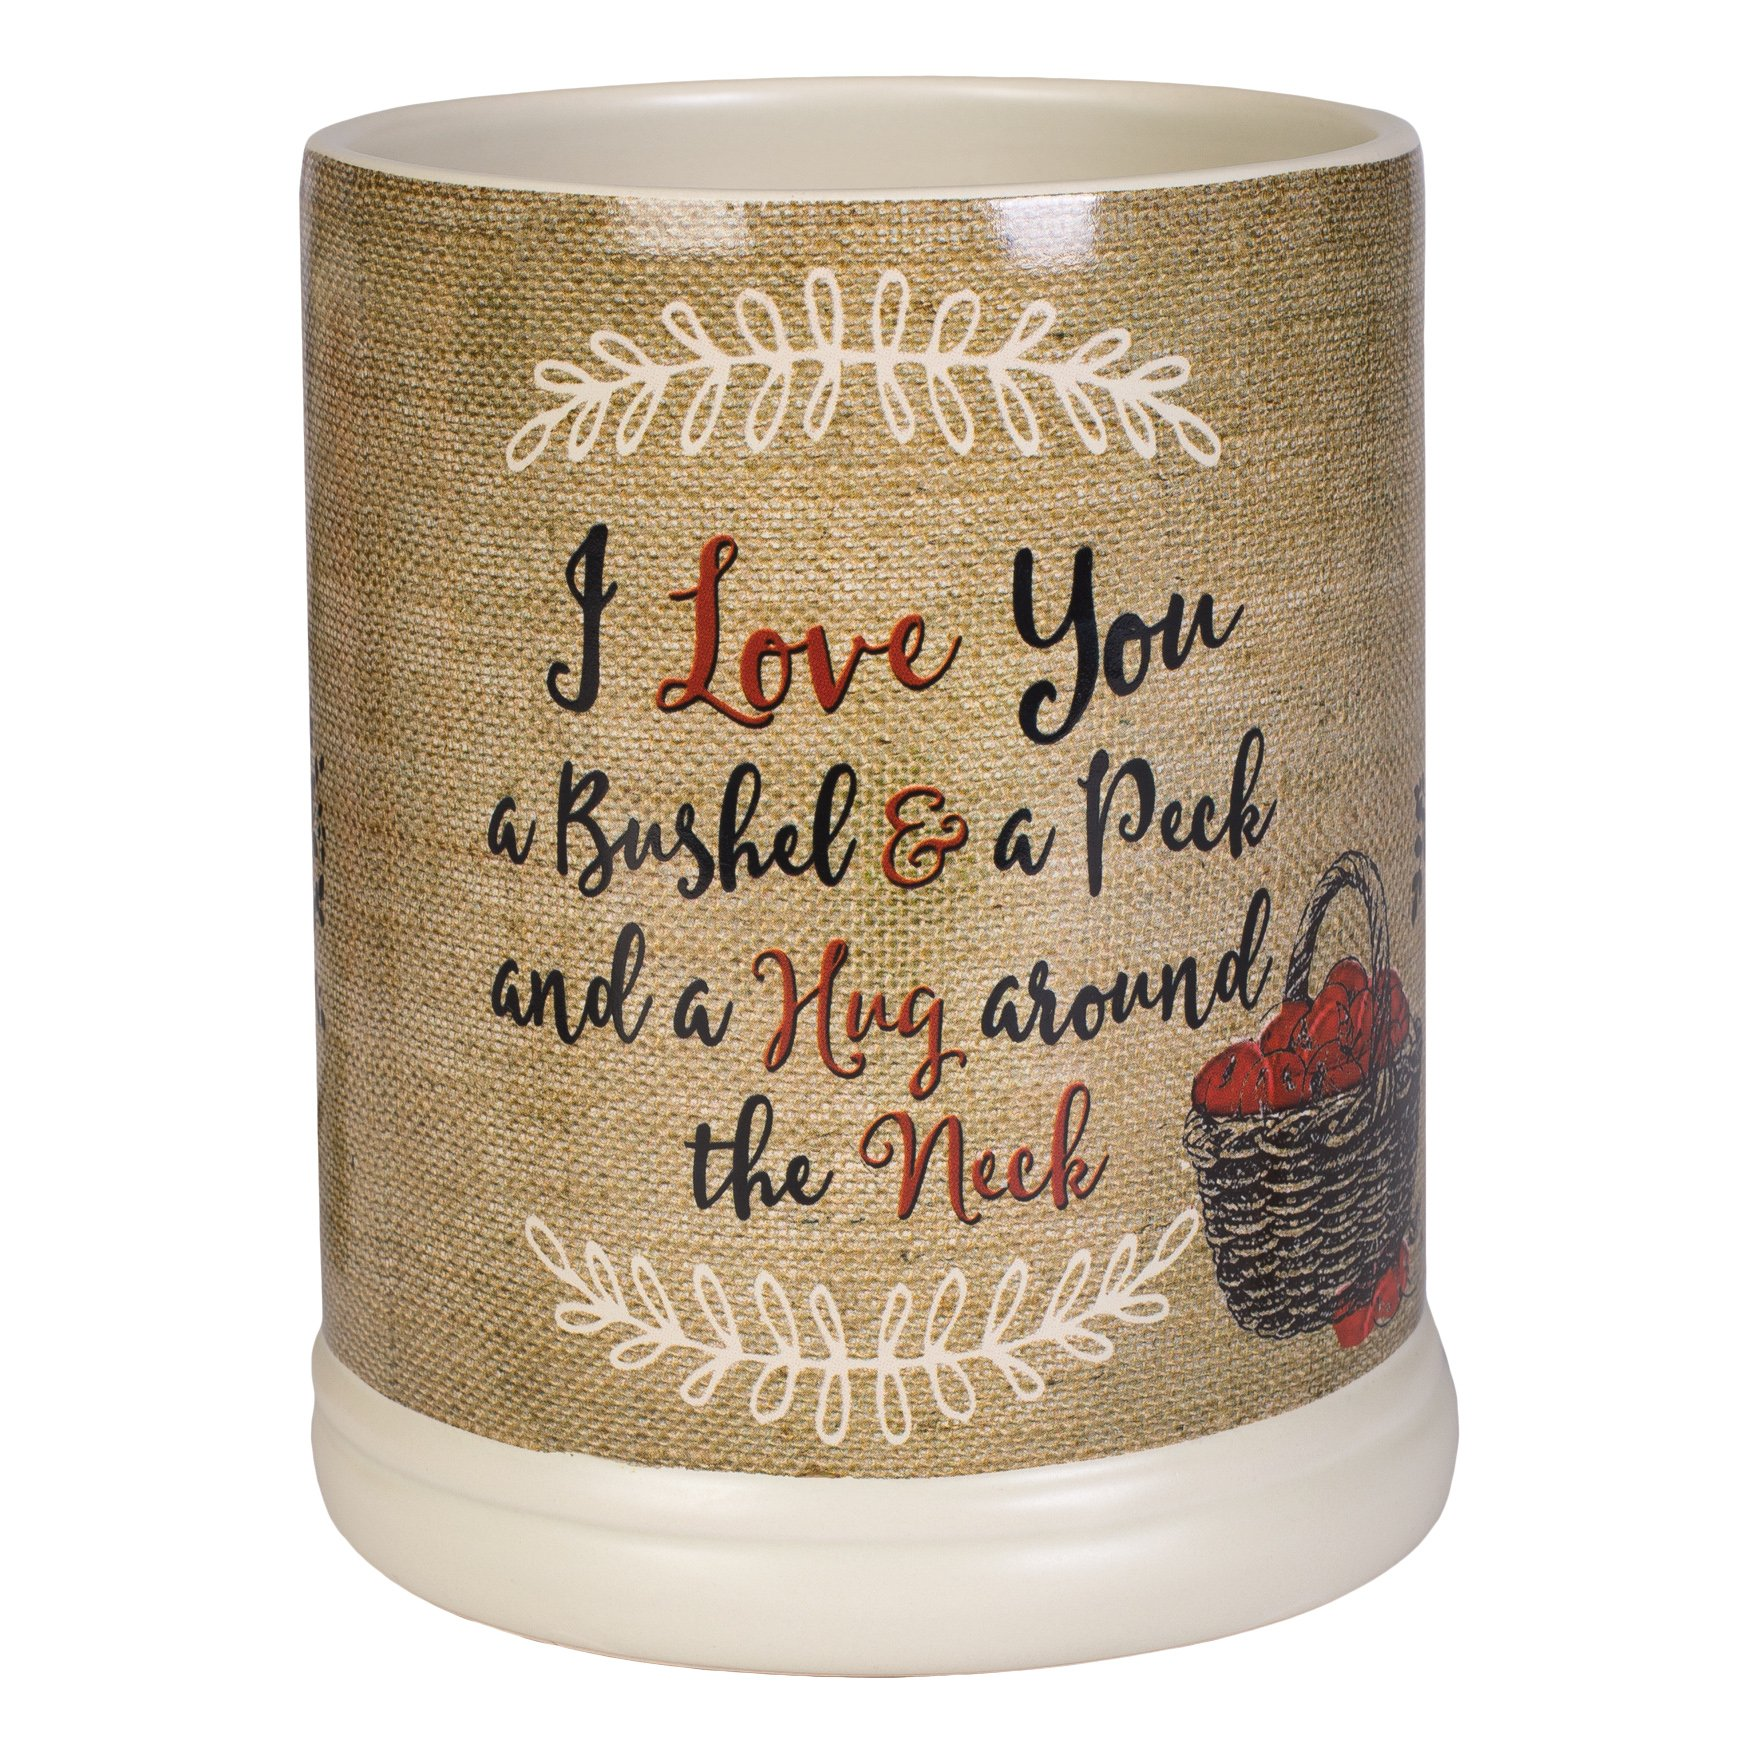 Elanze Designs I Love You A Bushel A Peck Burlap Apples Ceramic Stone Jar Warmer